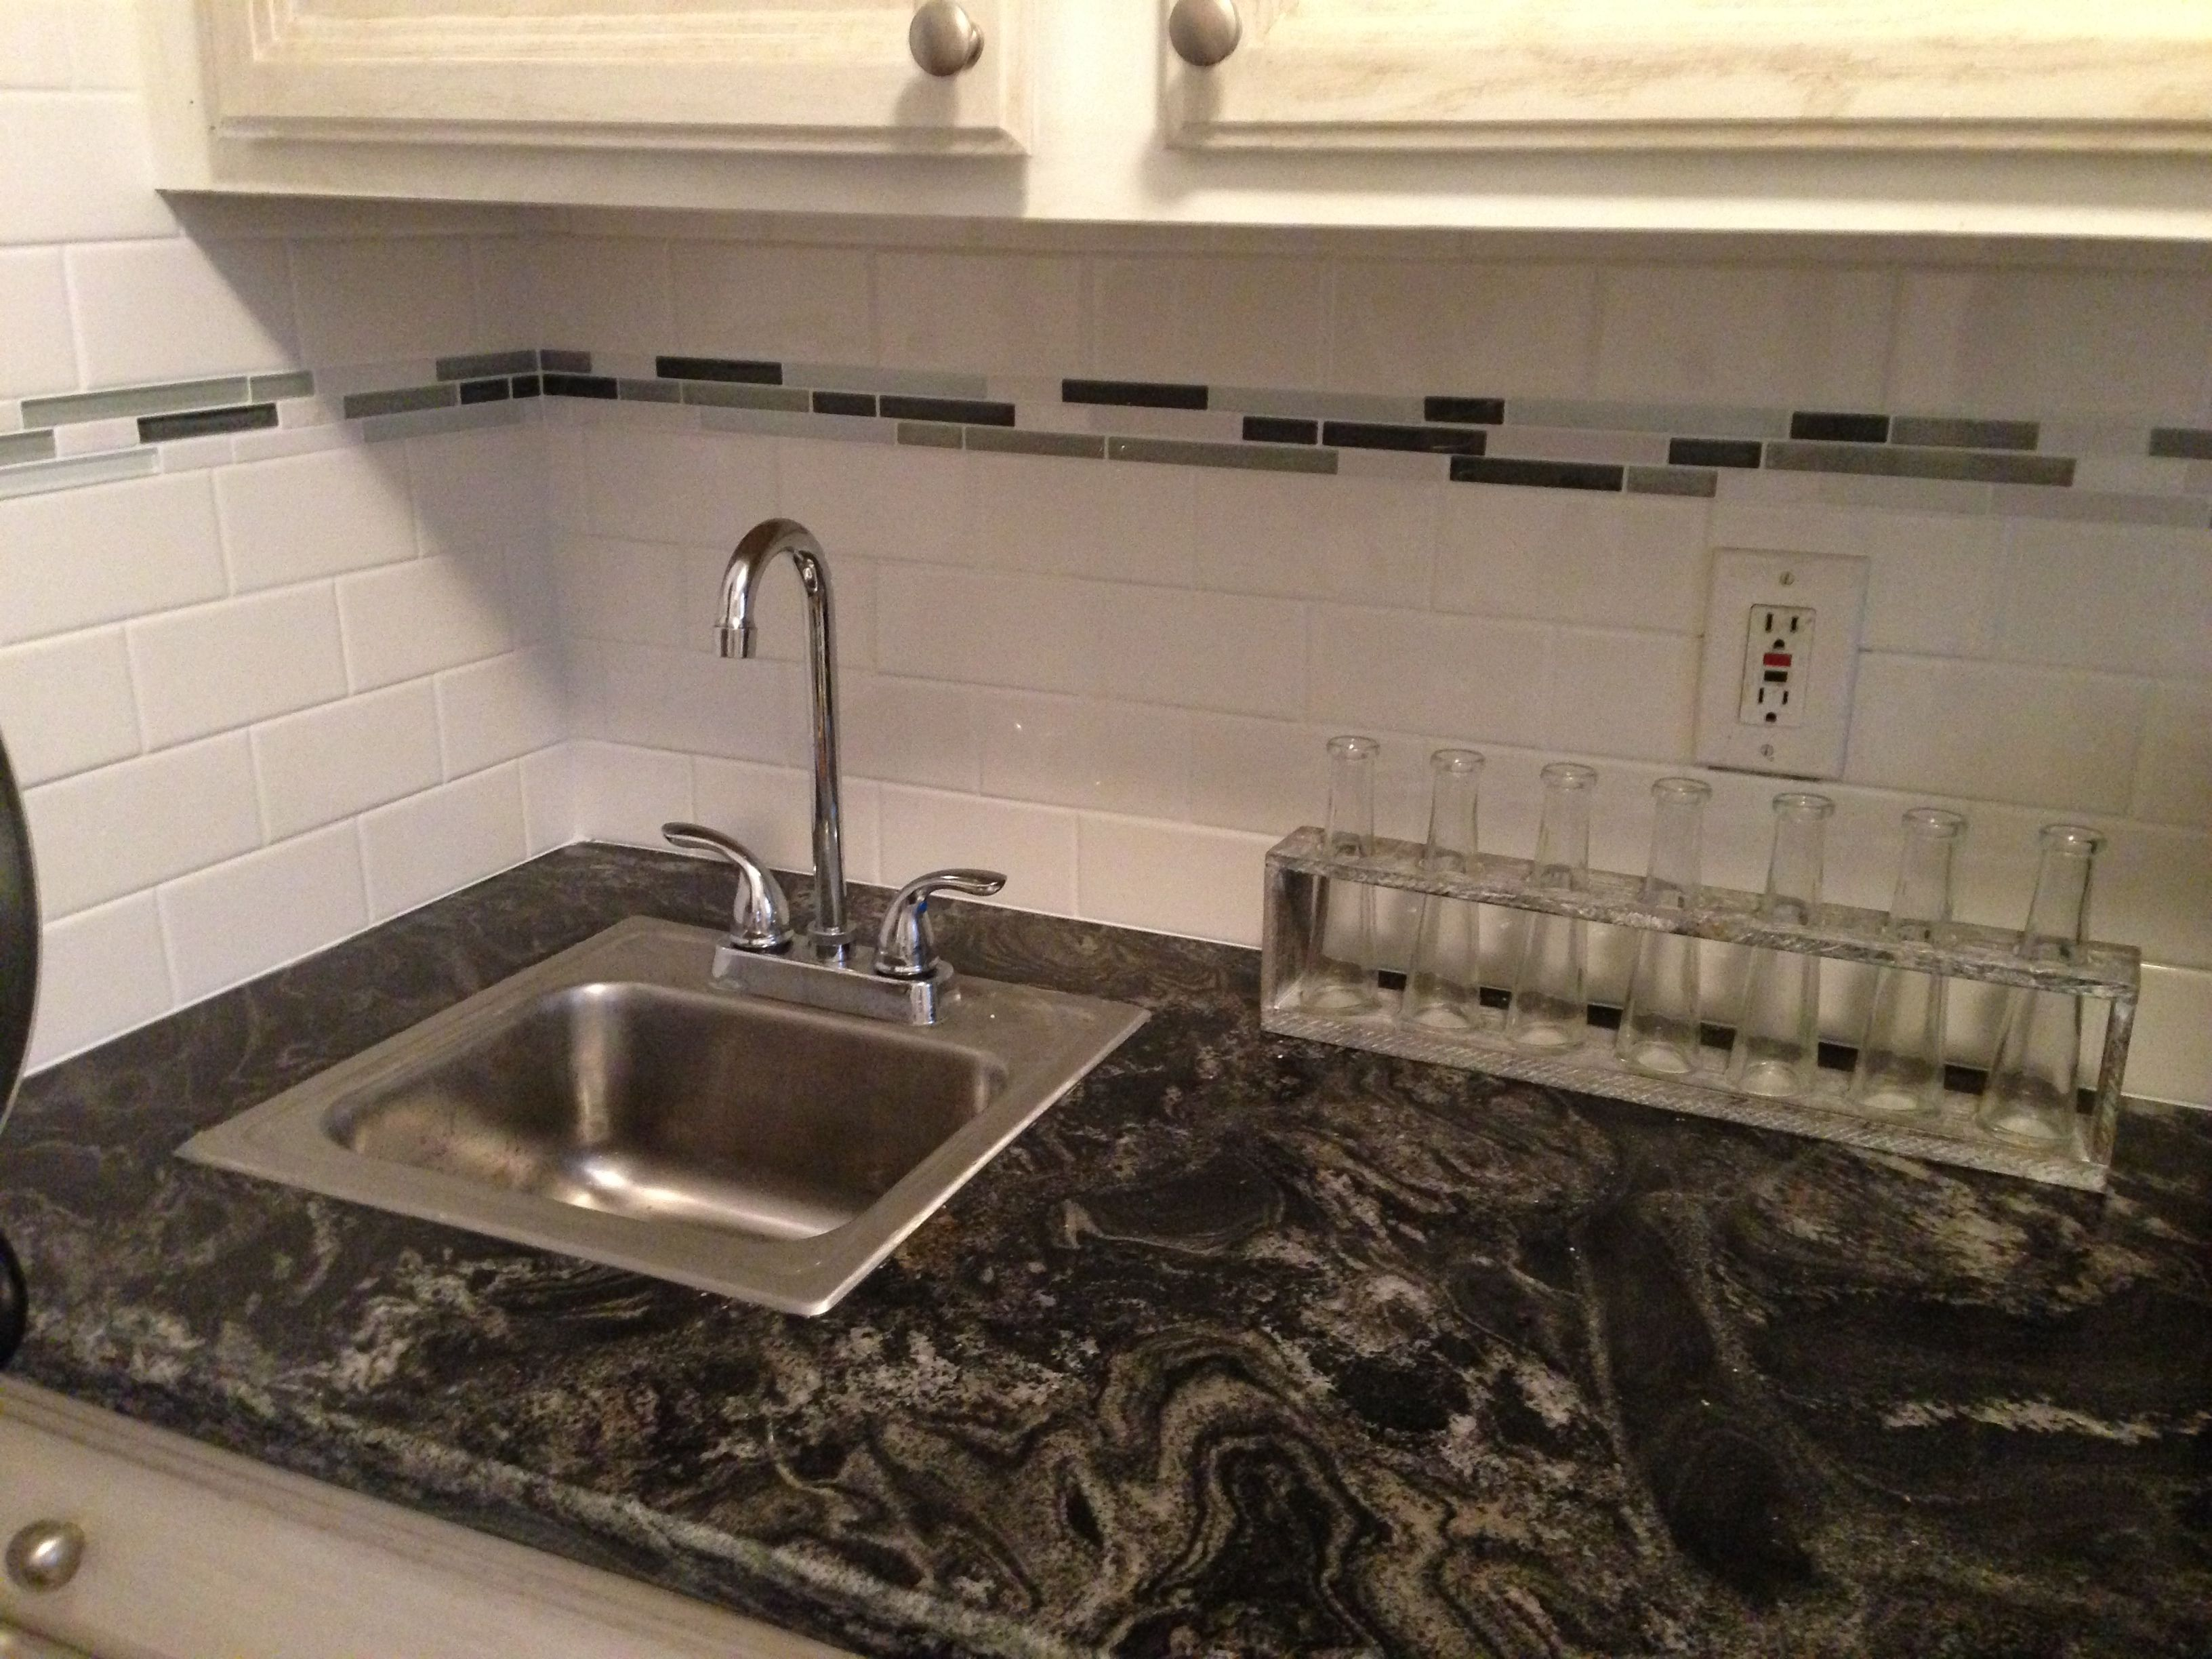 White subway tile with glass accent backsplash  Our house